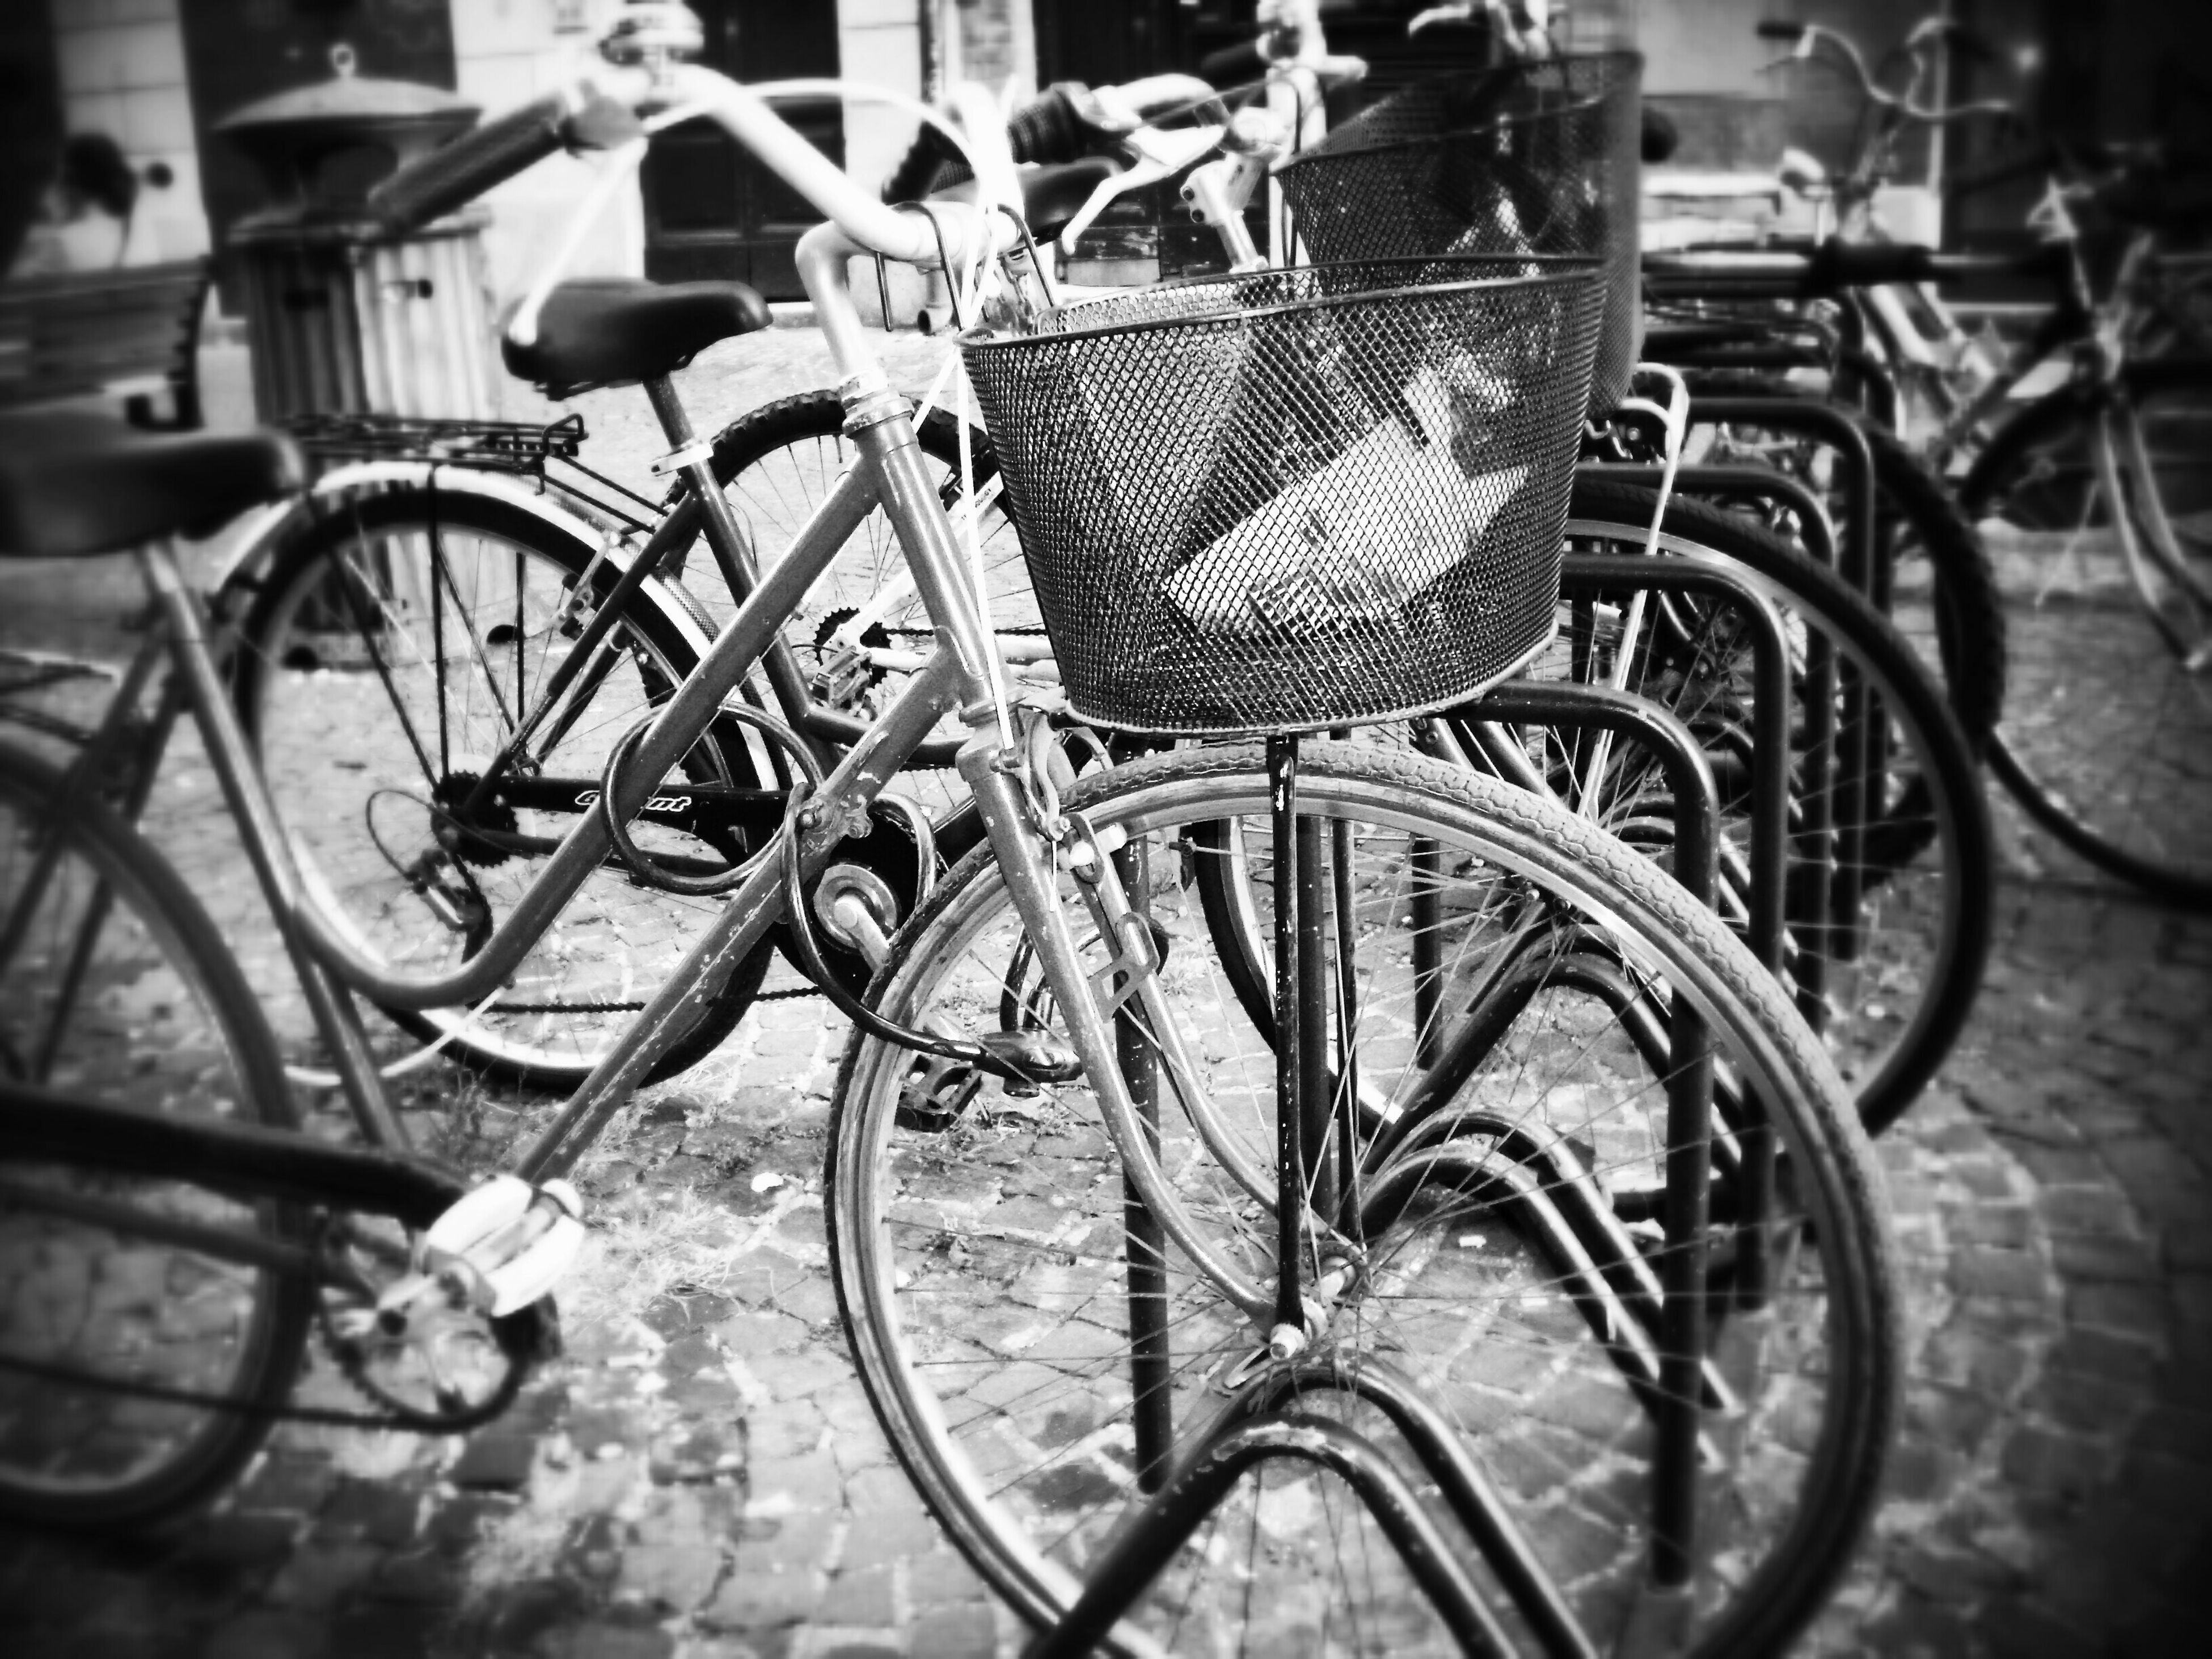 bicycle, mode of transport, transportation, land vehicle, stationary, parked, parking, absence, metal, focus on foreground, street, no people, sunlight, day, outdoors, parking lot, chair, wheel, in a row, close-up